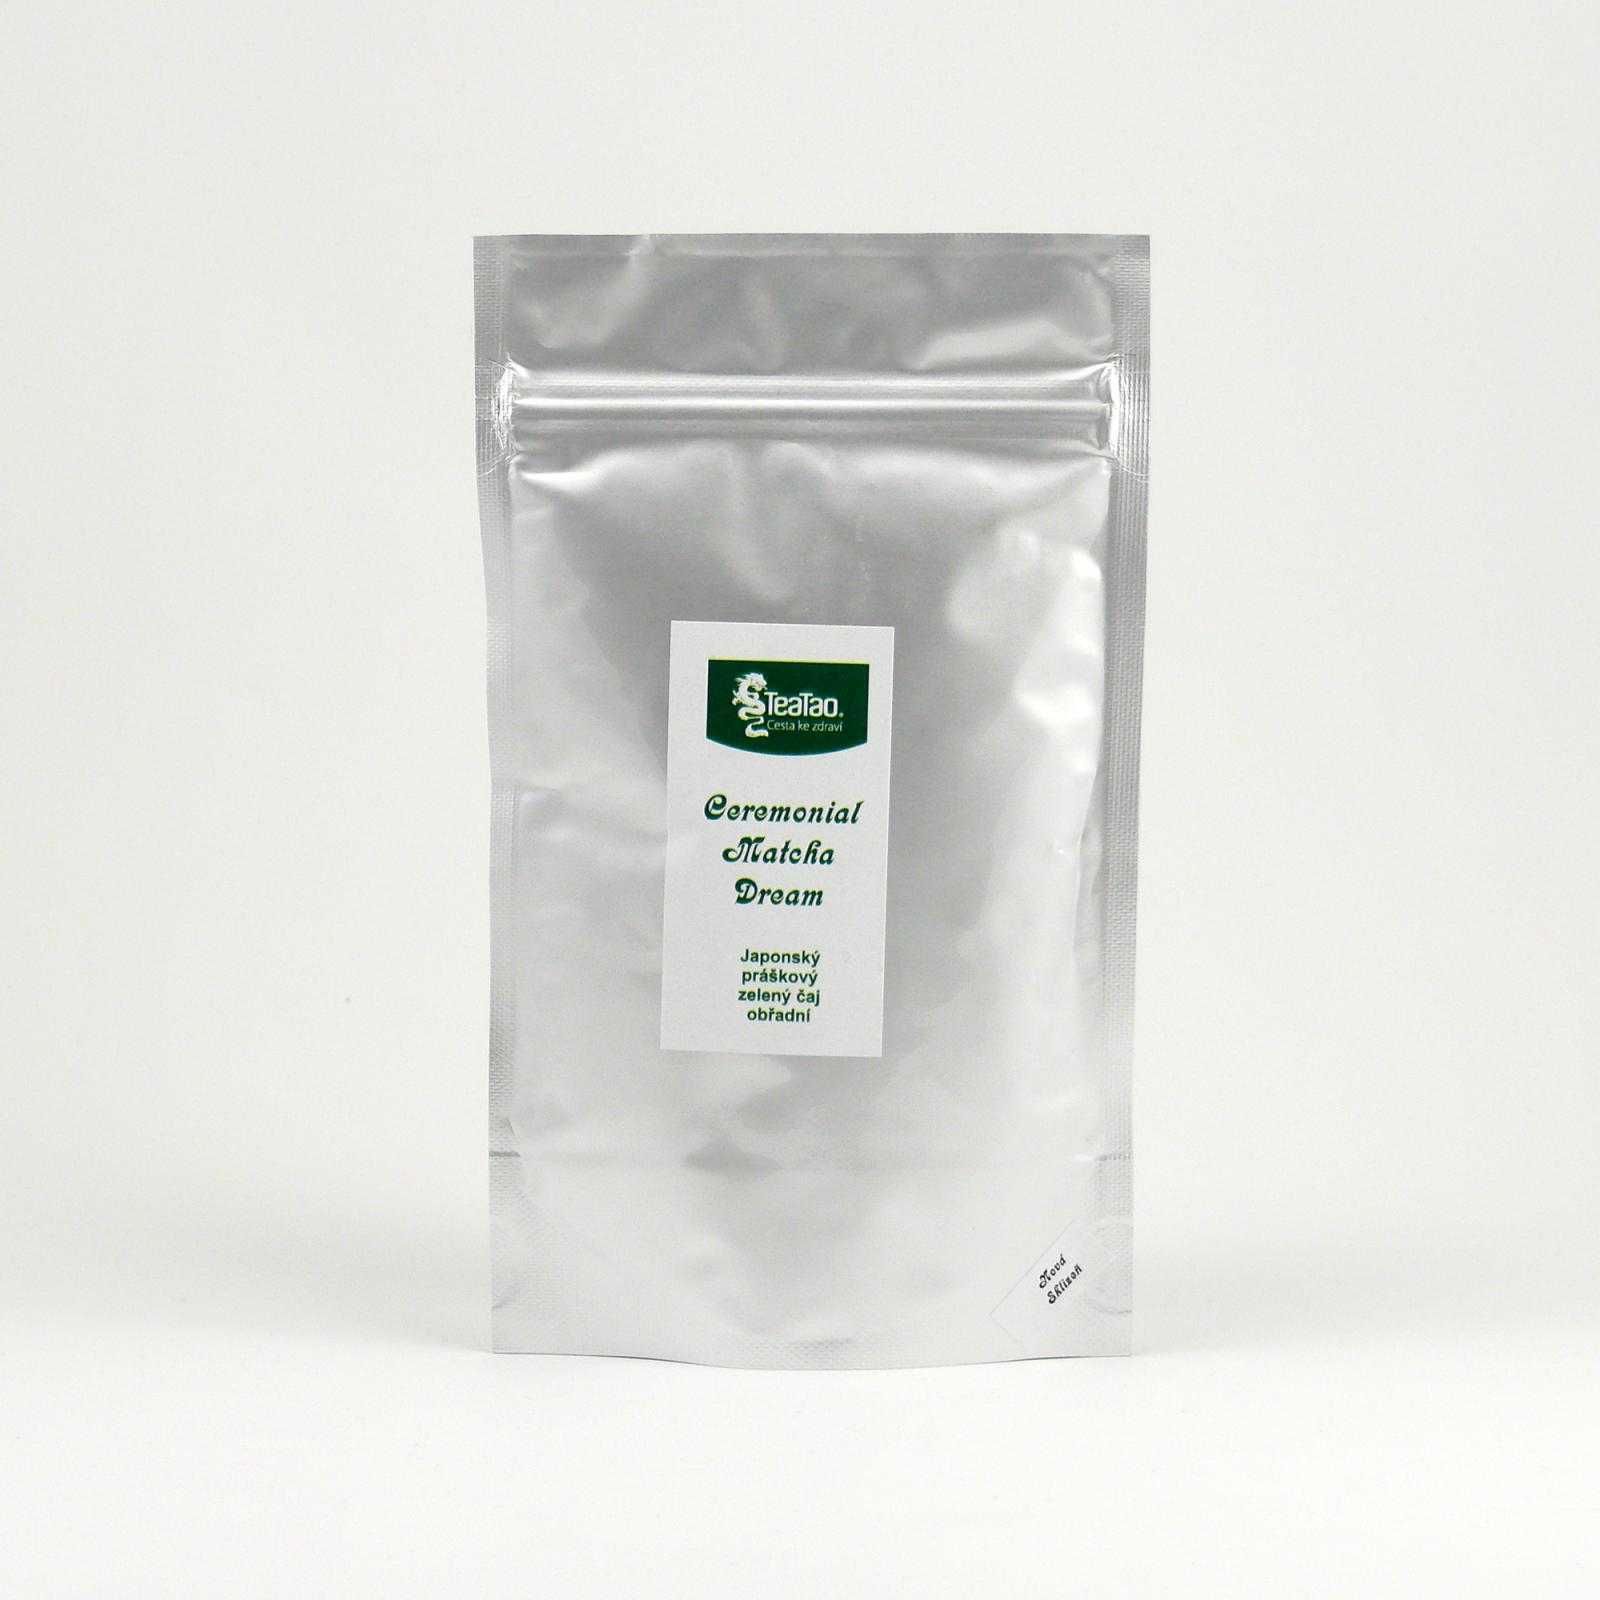 TeaTao Zelený čaj Ceremonial Matcha Dream 50 g